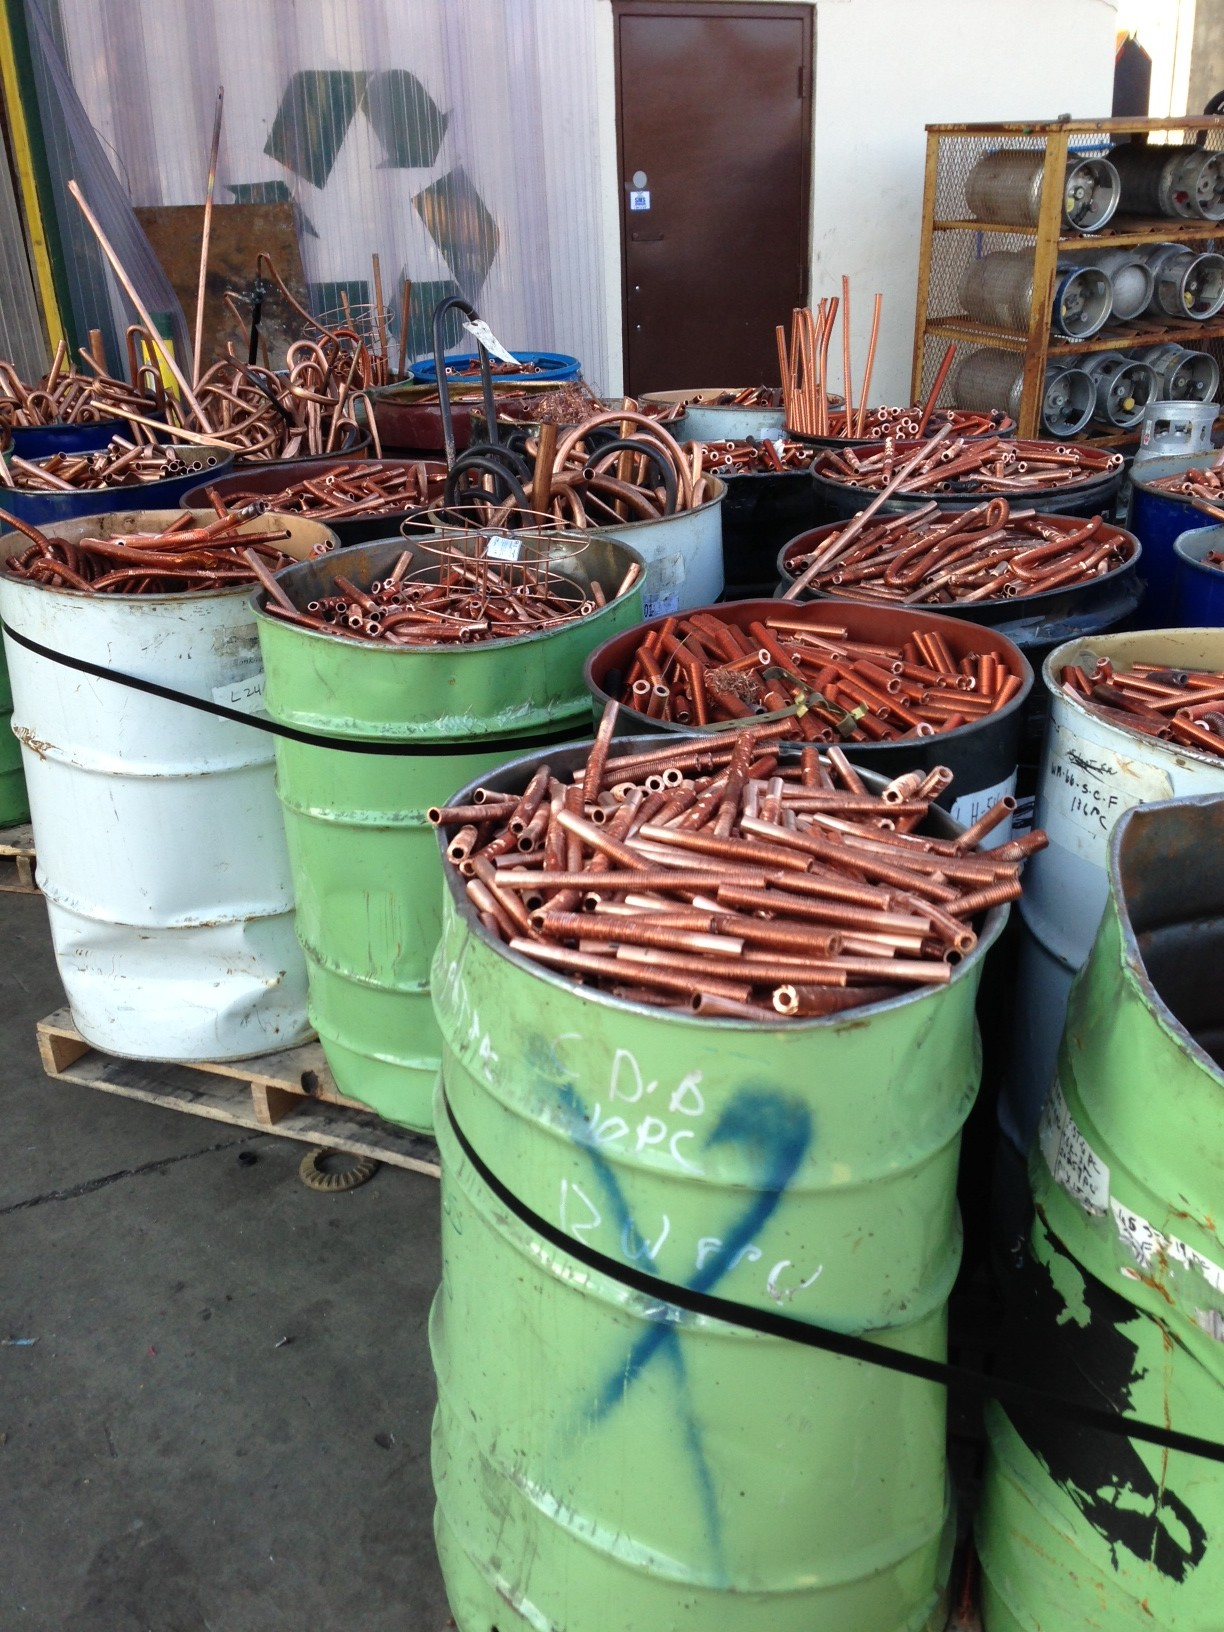 Current Copper Price Per Pound can also depends on the market price.